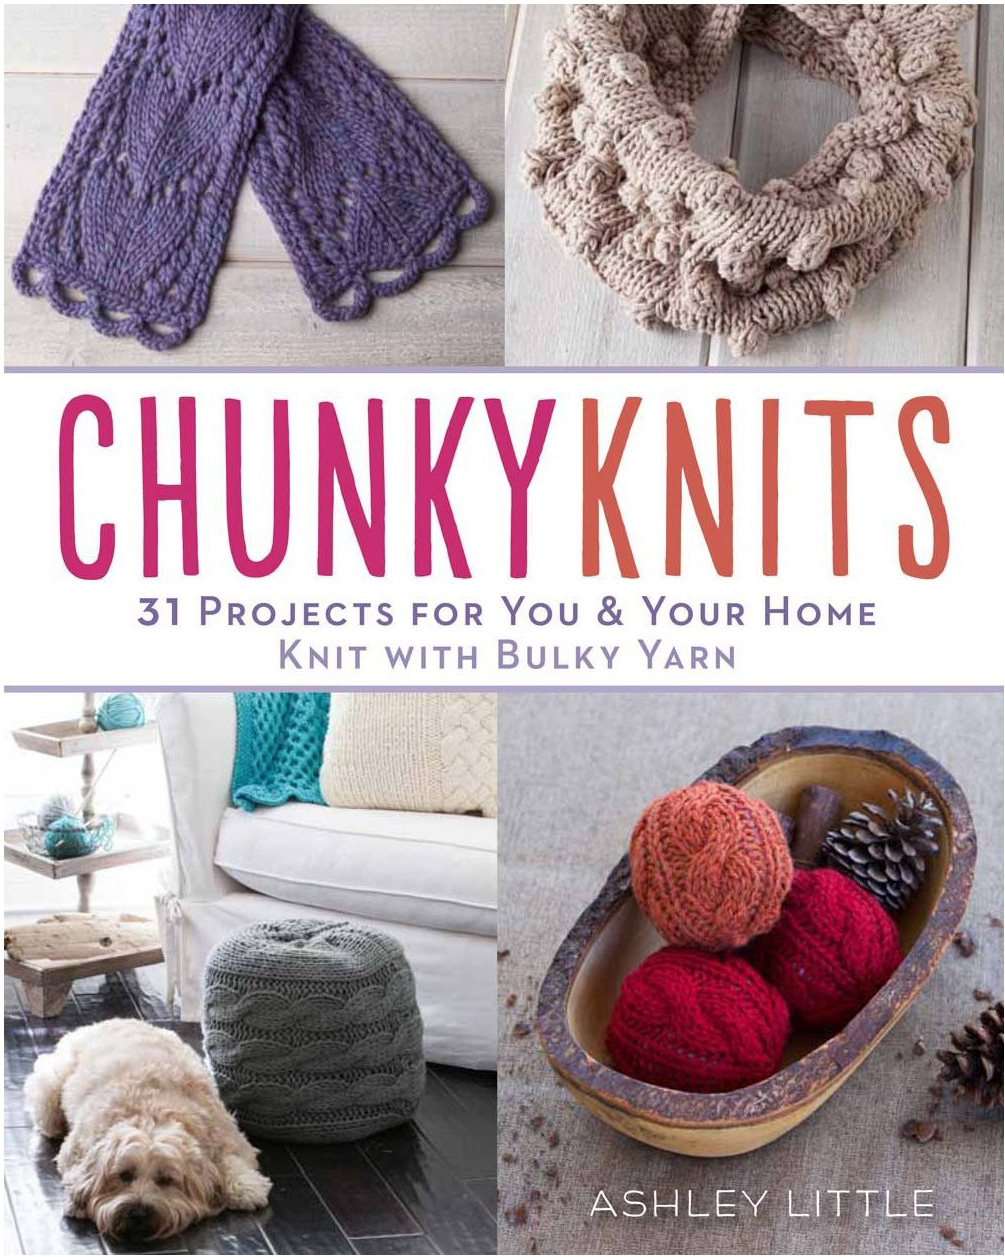 Chunky Knits Pillow and Footstool